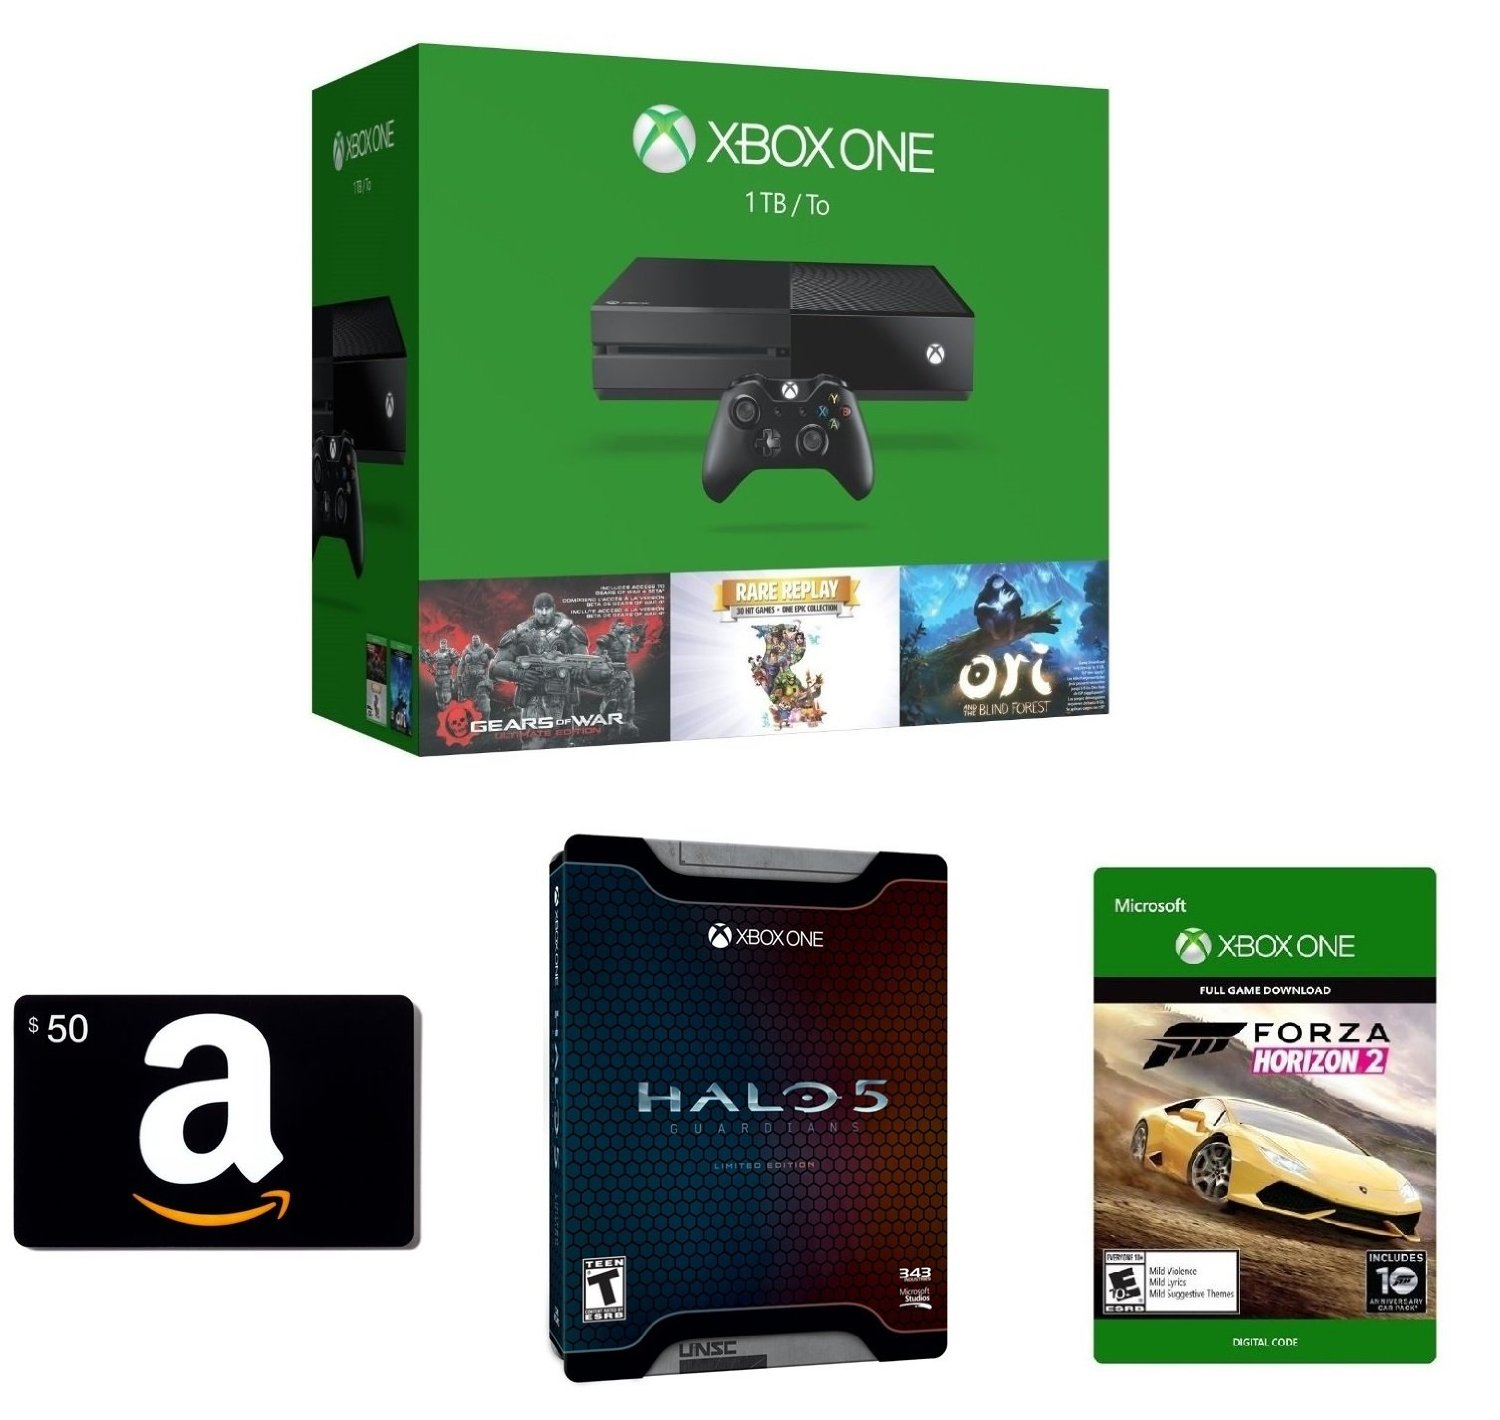 Xbox One Amazon Bundle